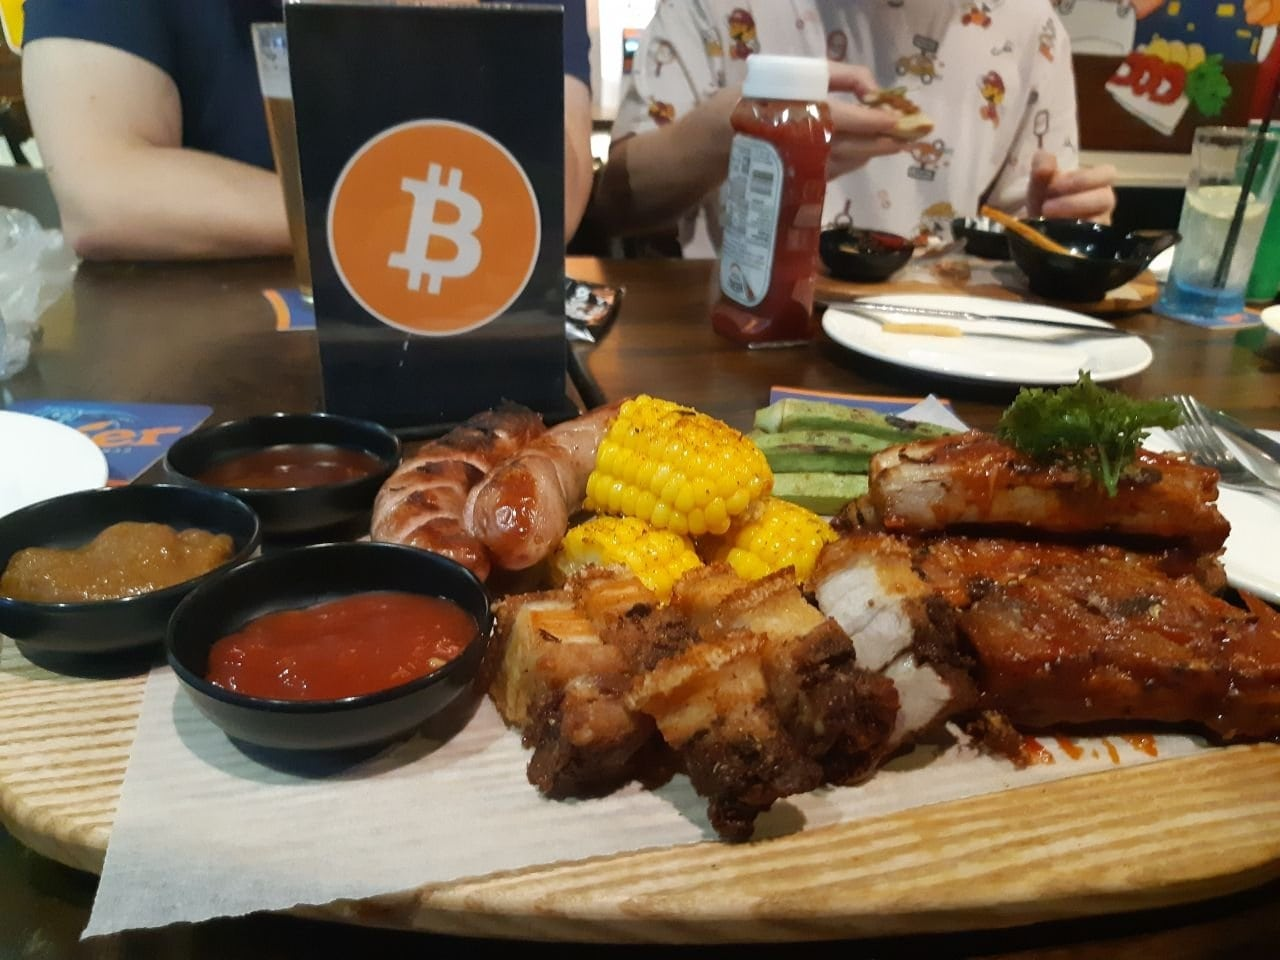 Bitcoin & Meat the recipe for happiness and a long & prosperous life